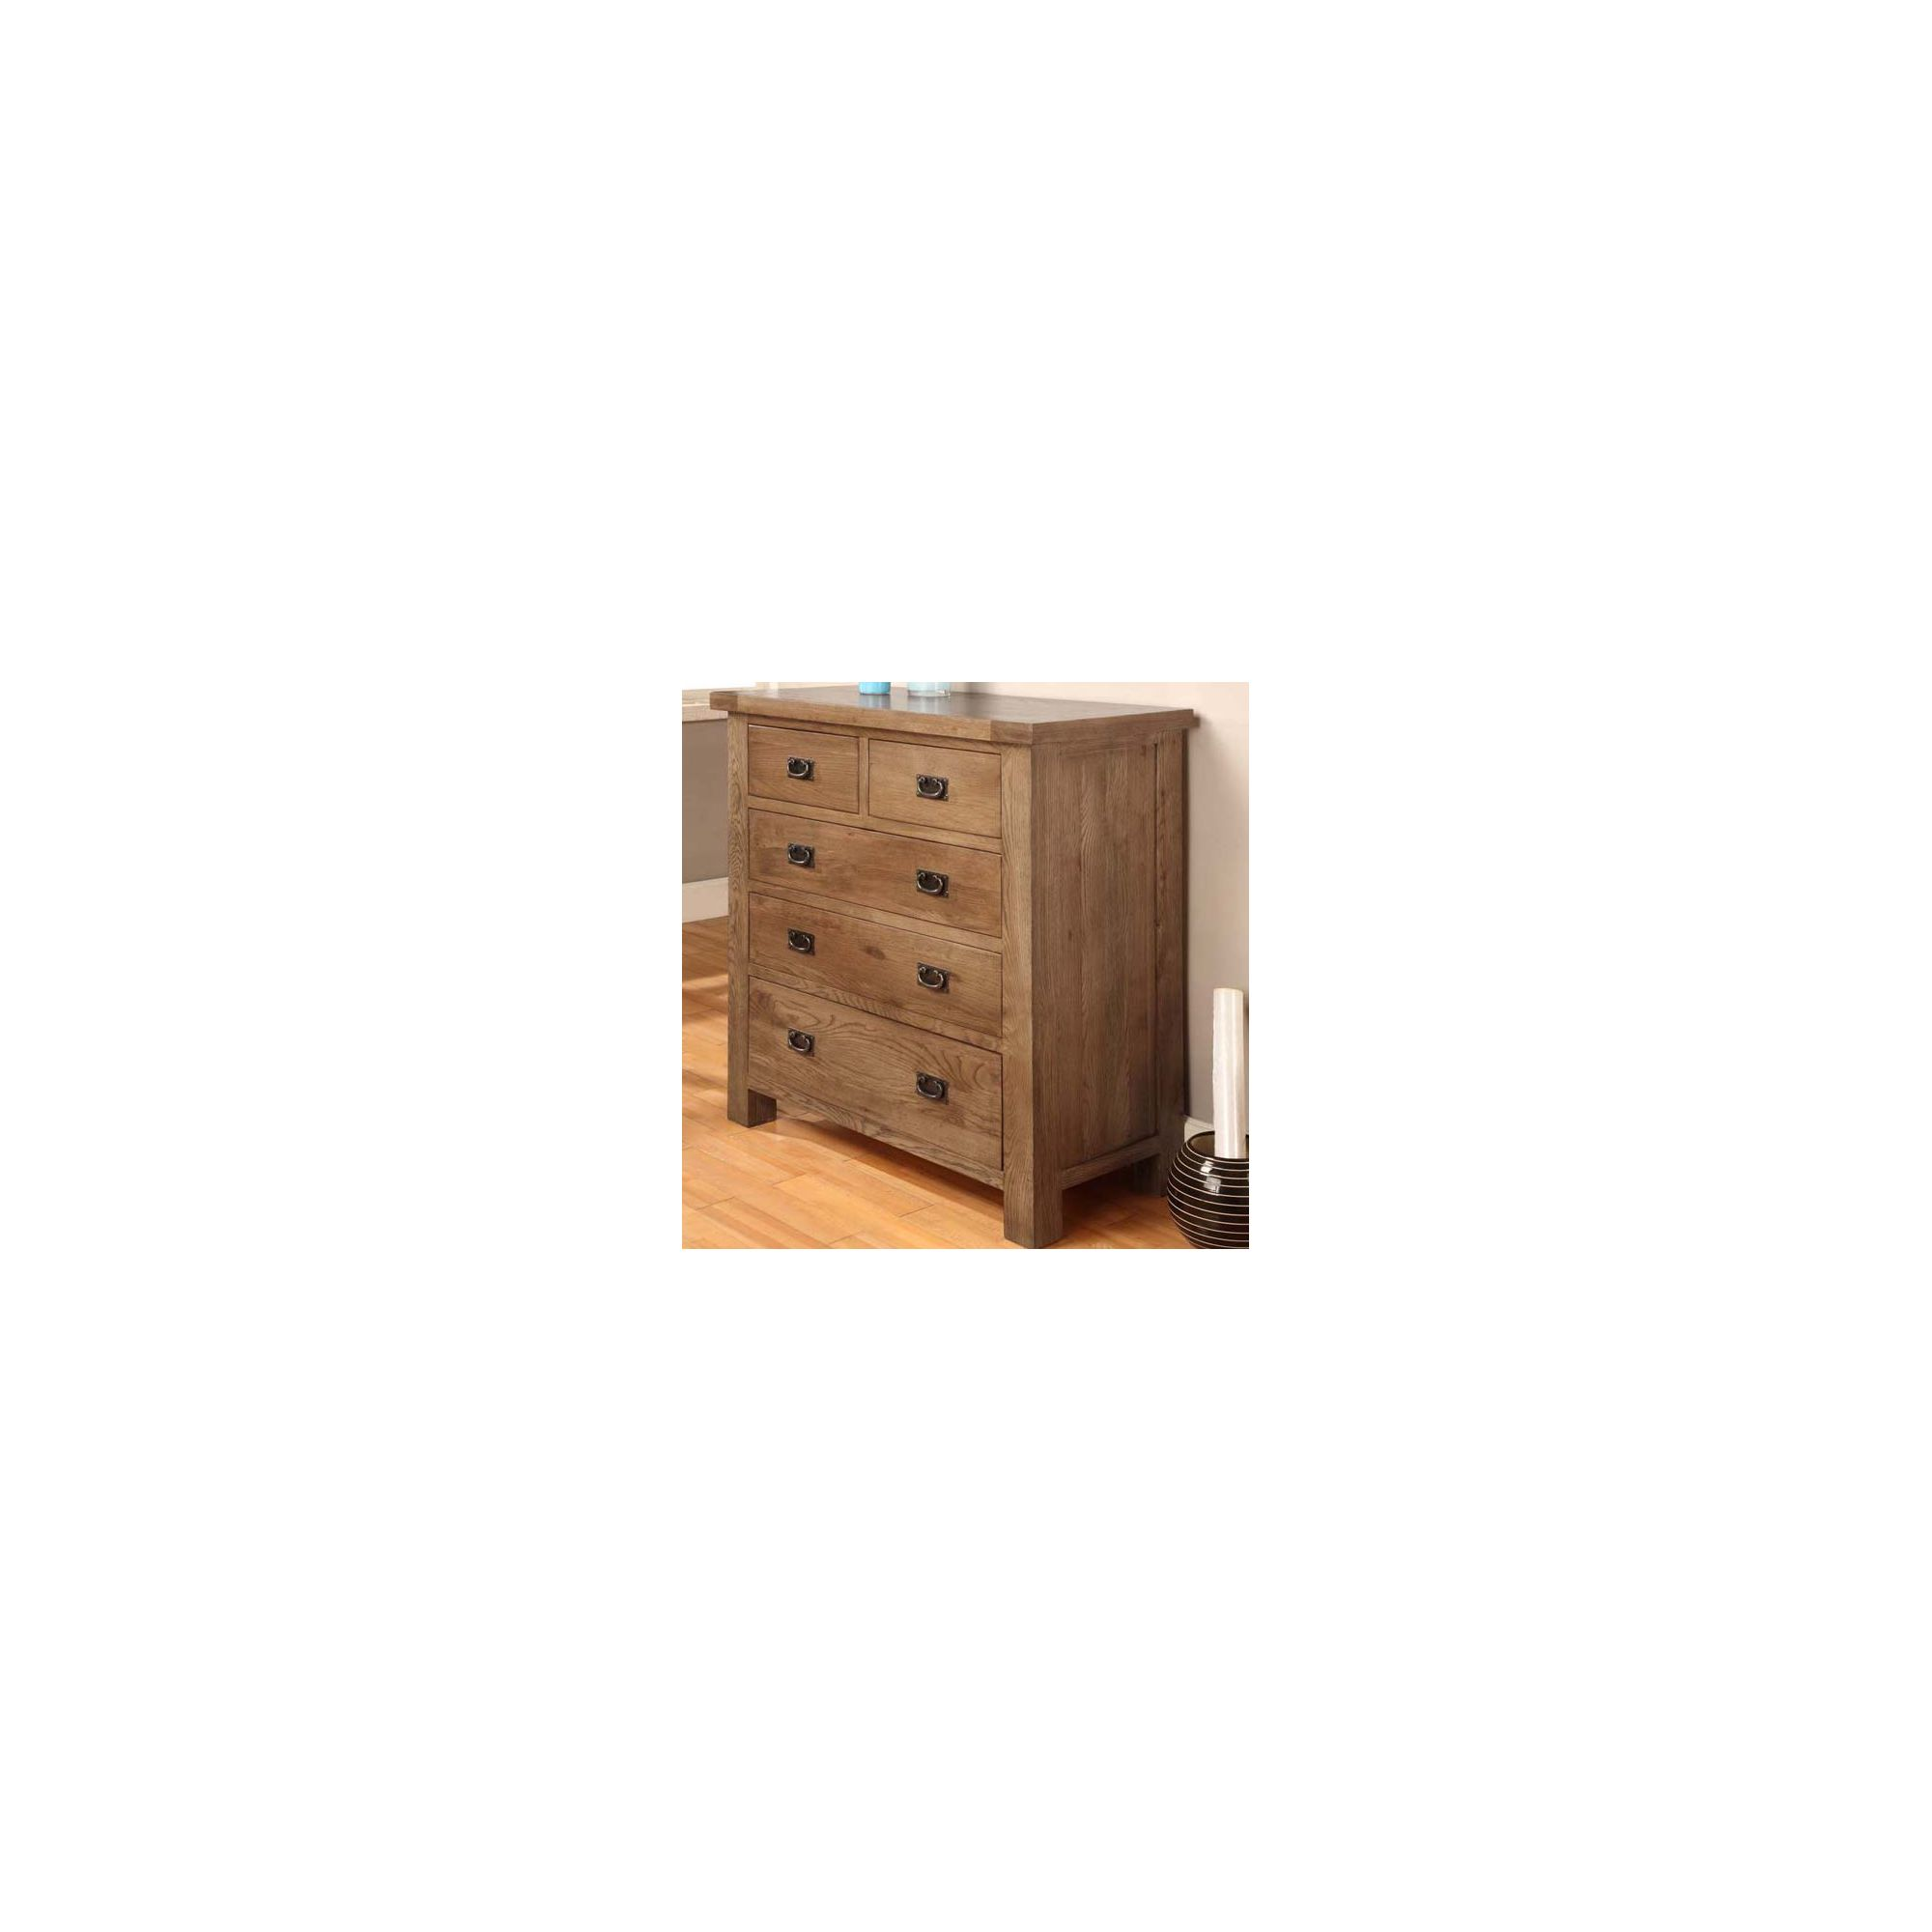 Hawkshead Brooklyn Five Drawers Chest in Rich Patina at Tesco Direct